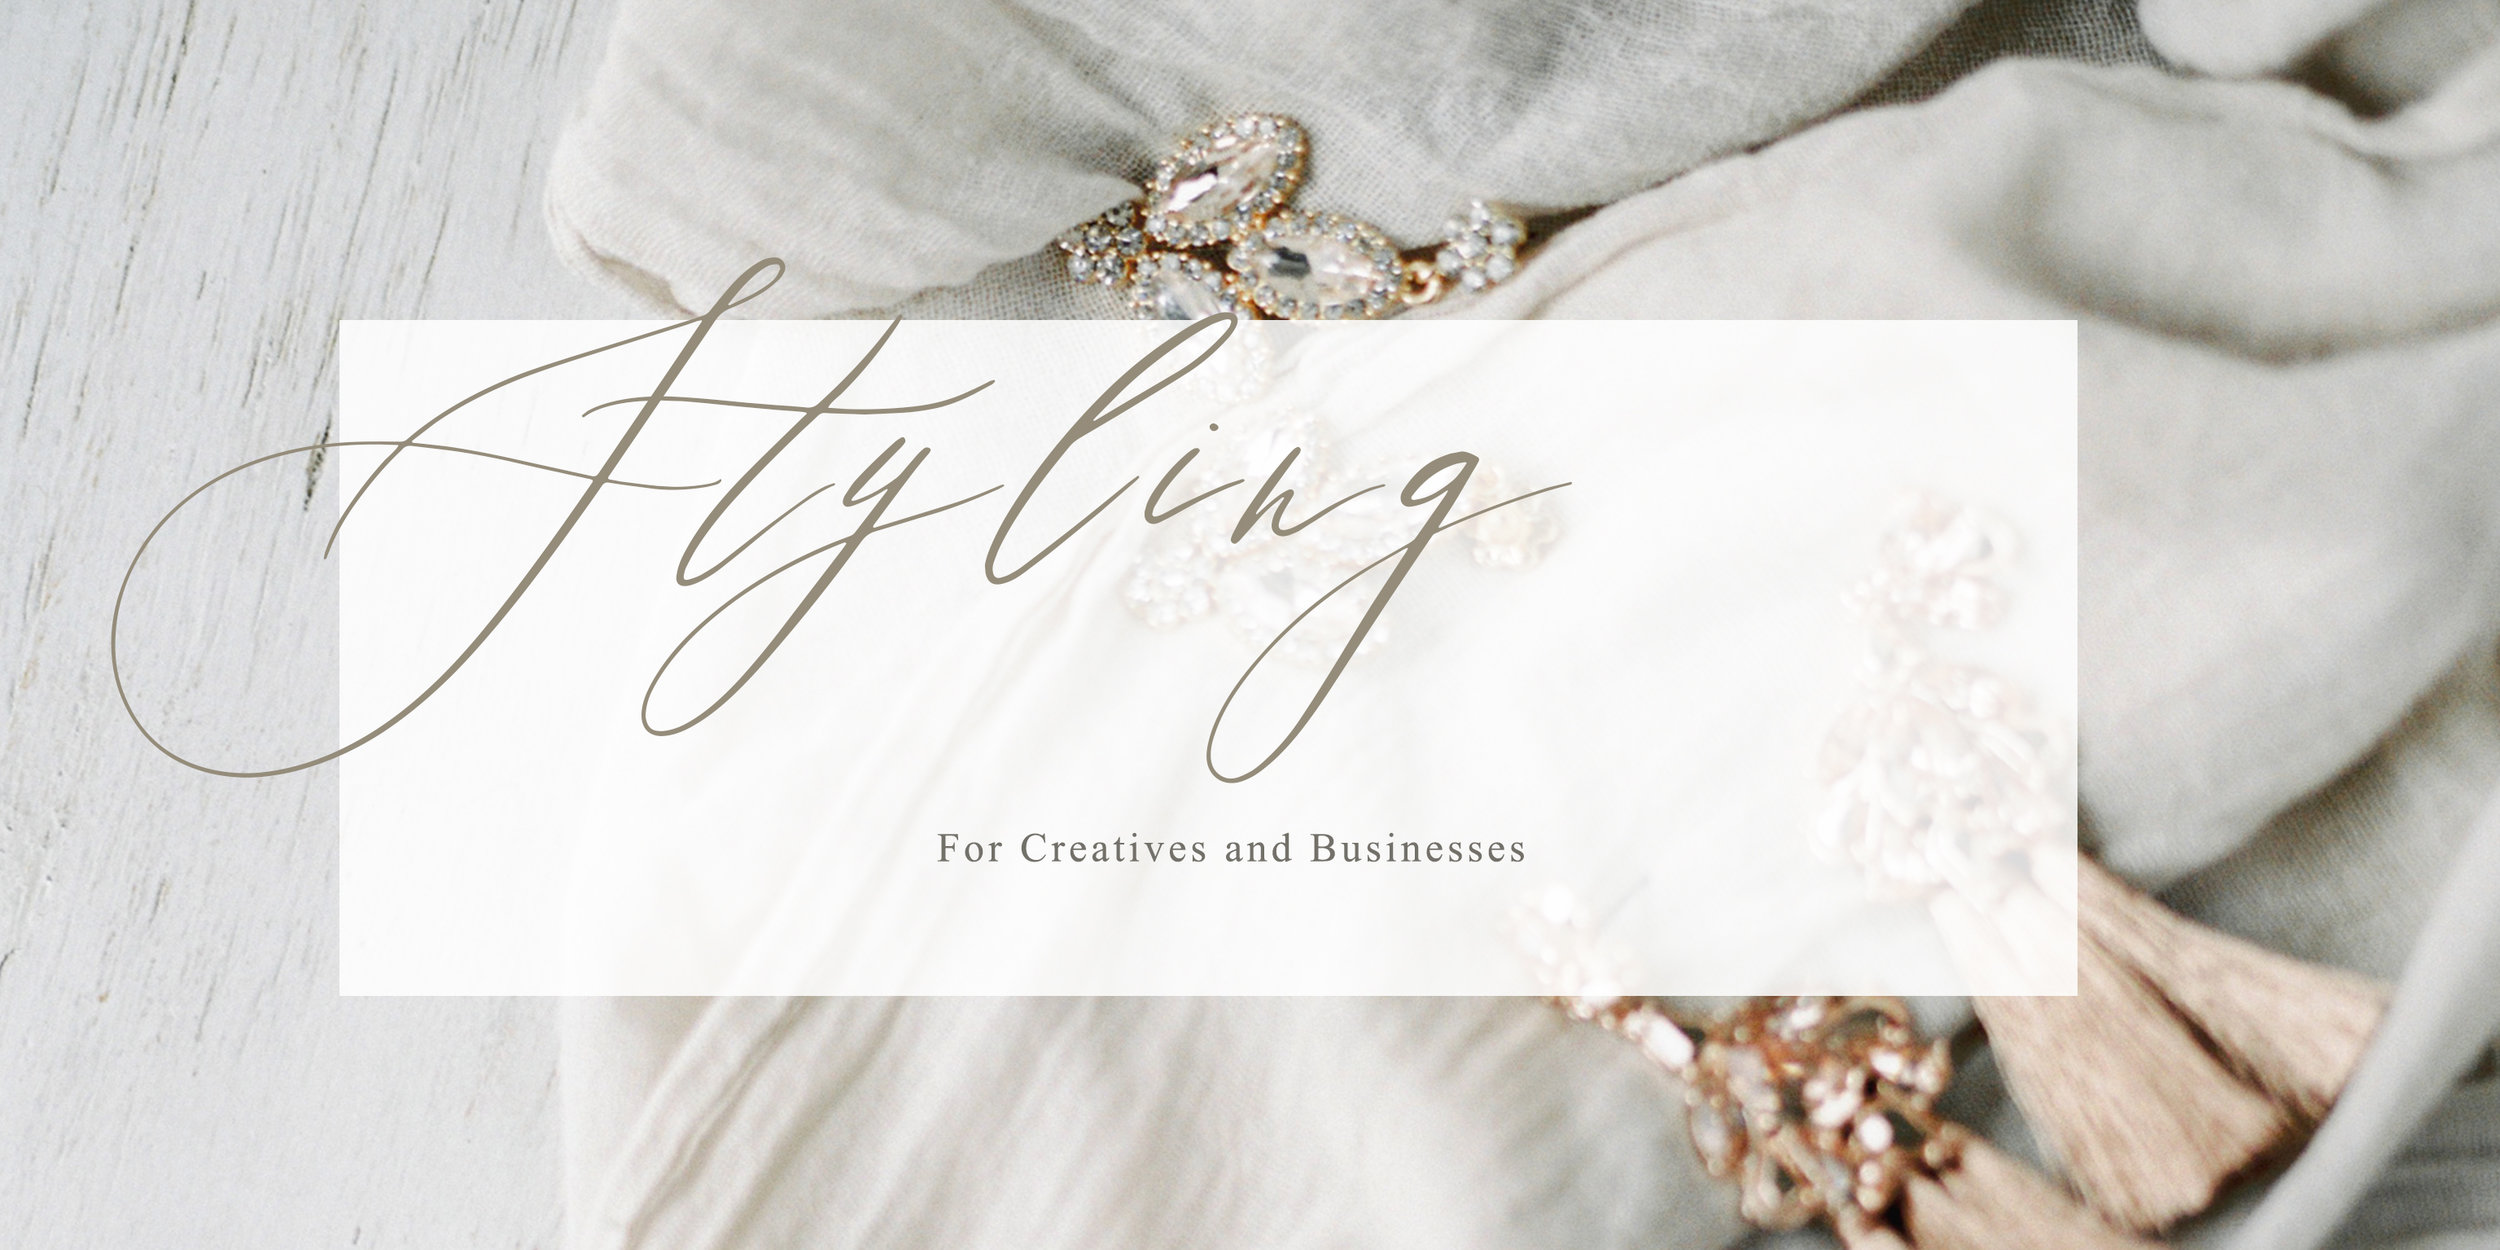 Lily & Sage | Luxury Wedding Planner | Bridal Fashion Show Fashion Stylist Event Stylist  Bridal Collection Fashion Events Events Styling Lifestyle & Product Branding.jpg